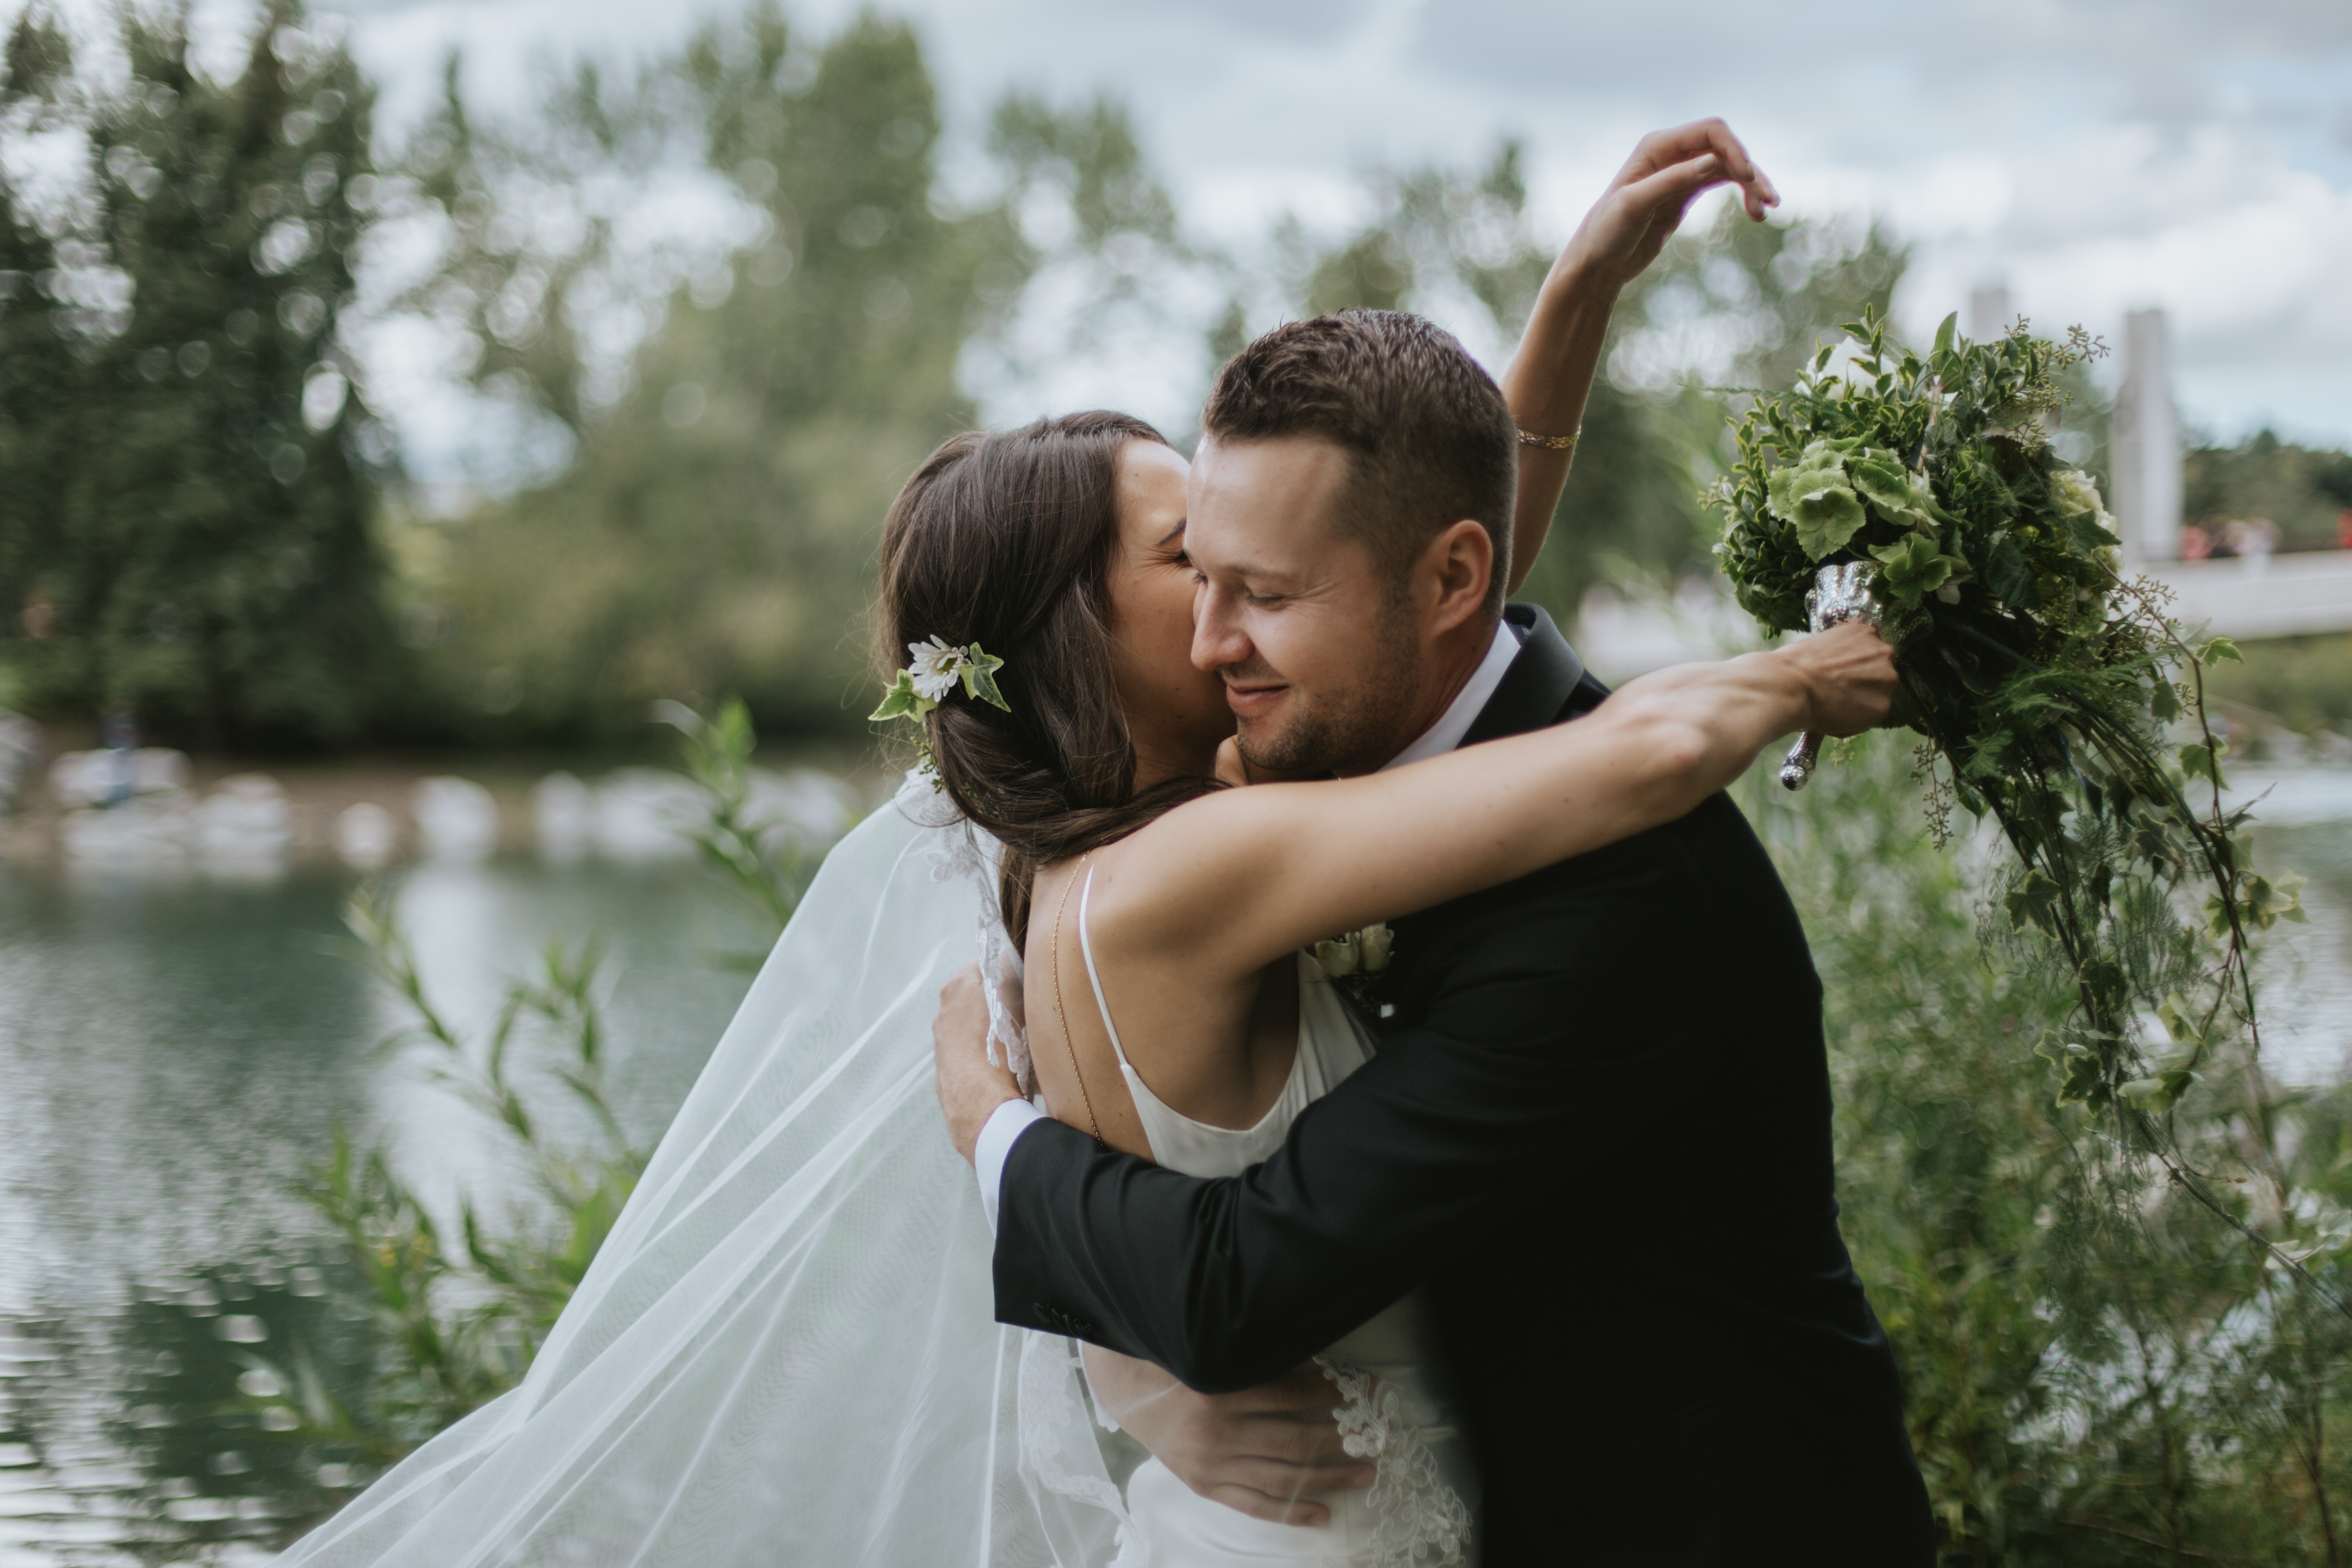 groom pulls the bride in for a hug